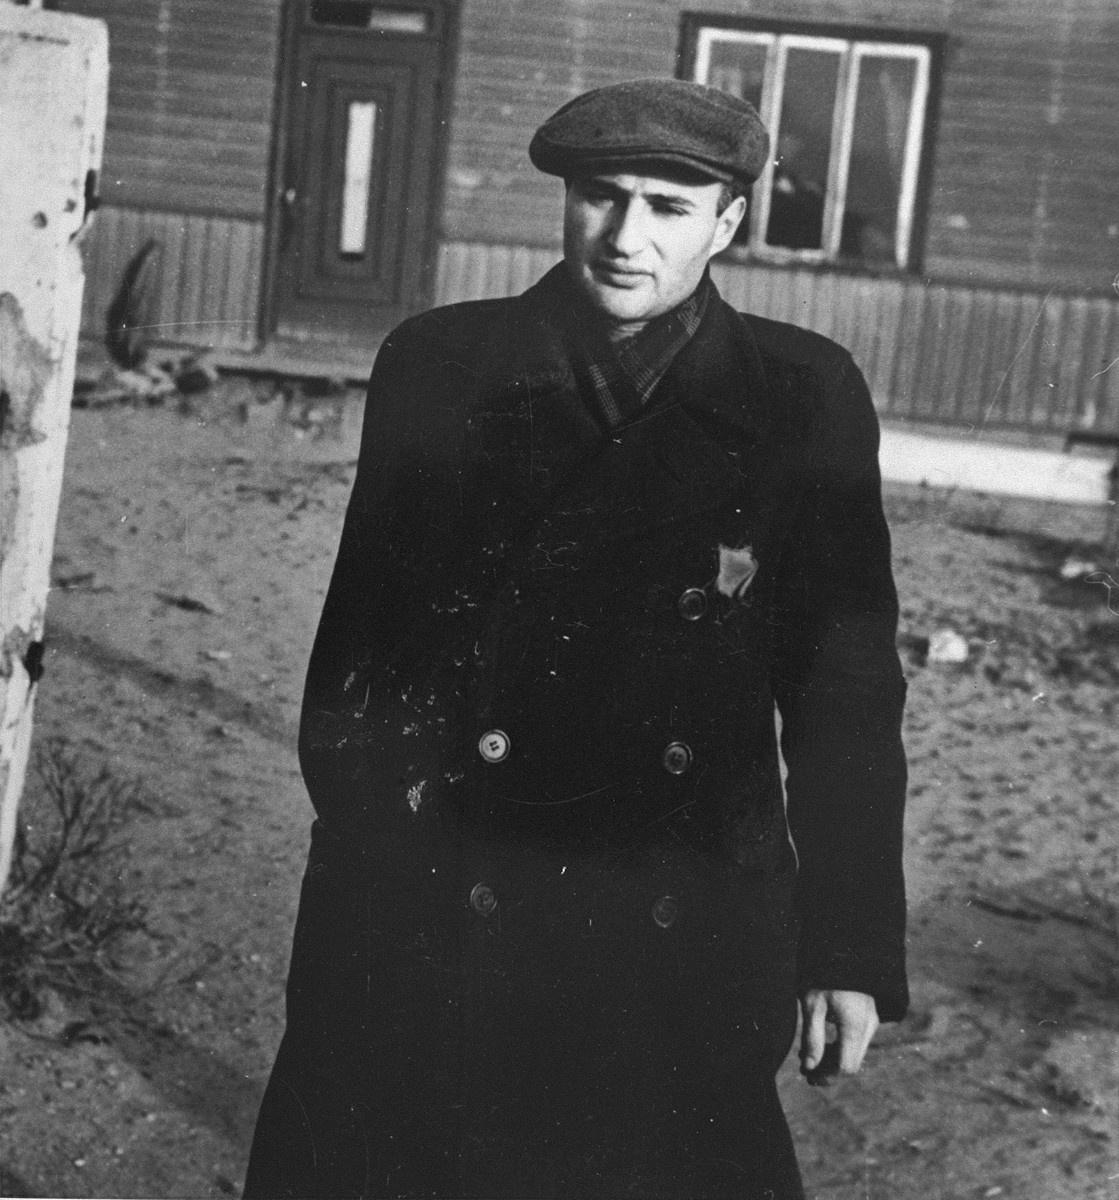 Portrait of Noah Strauss in the Kovno Ghetto.  Before the war, Noah was a clerk in the Central Bank of Kovno.  During the Slobodka pogroms in June 1941, Lithuanian partisans fired shots into his home.  His mother Yentl was killed, and Noah lost his left arm.  In June 1944, Noah was deported to Dachau where he perished shortly before liberation.